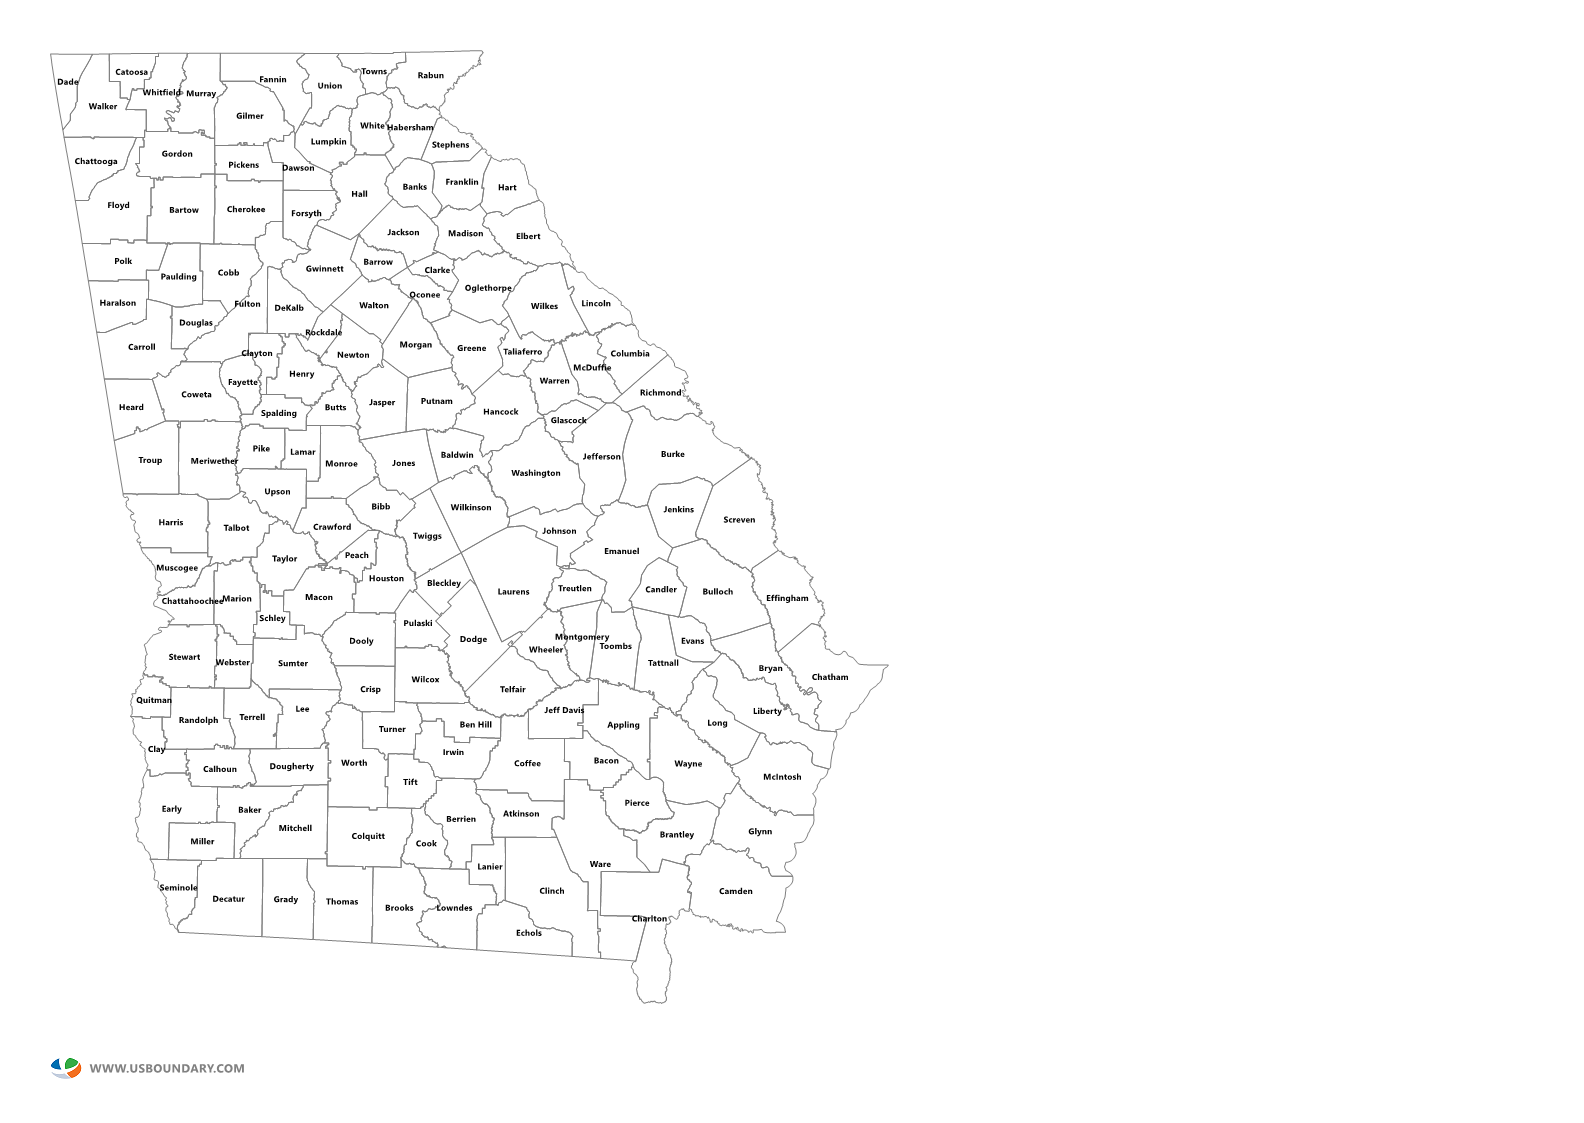 State Counties Maps Download - Counties of georgia map